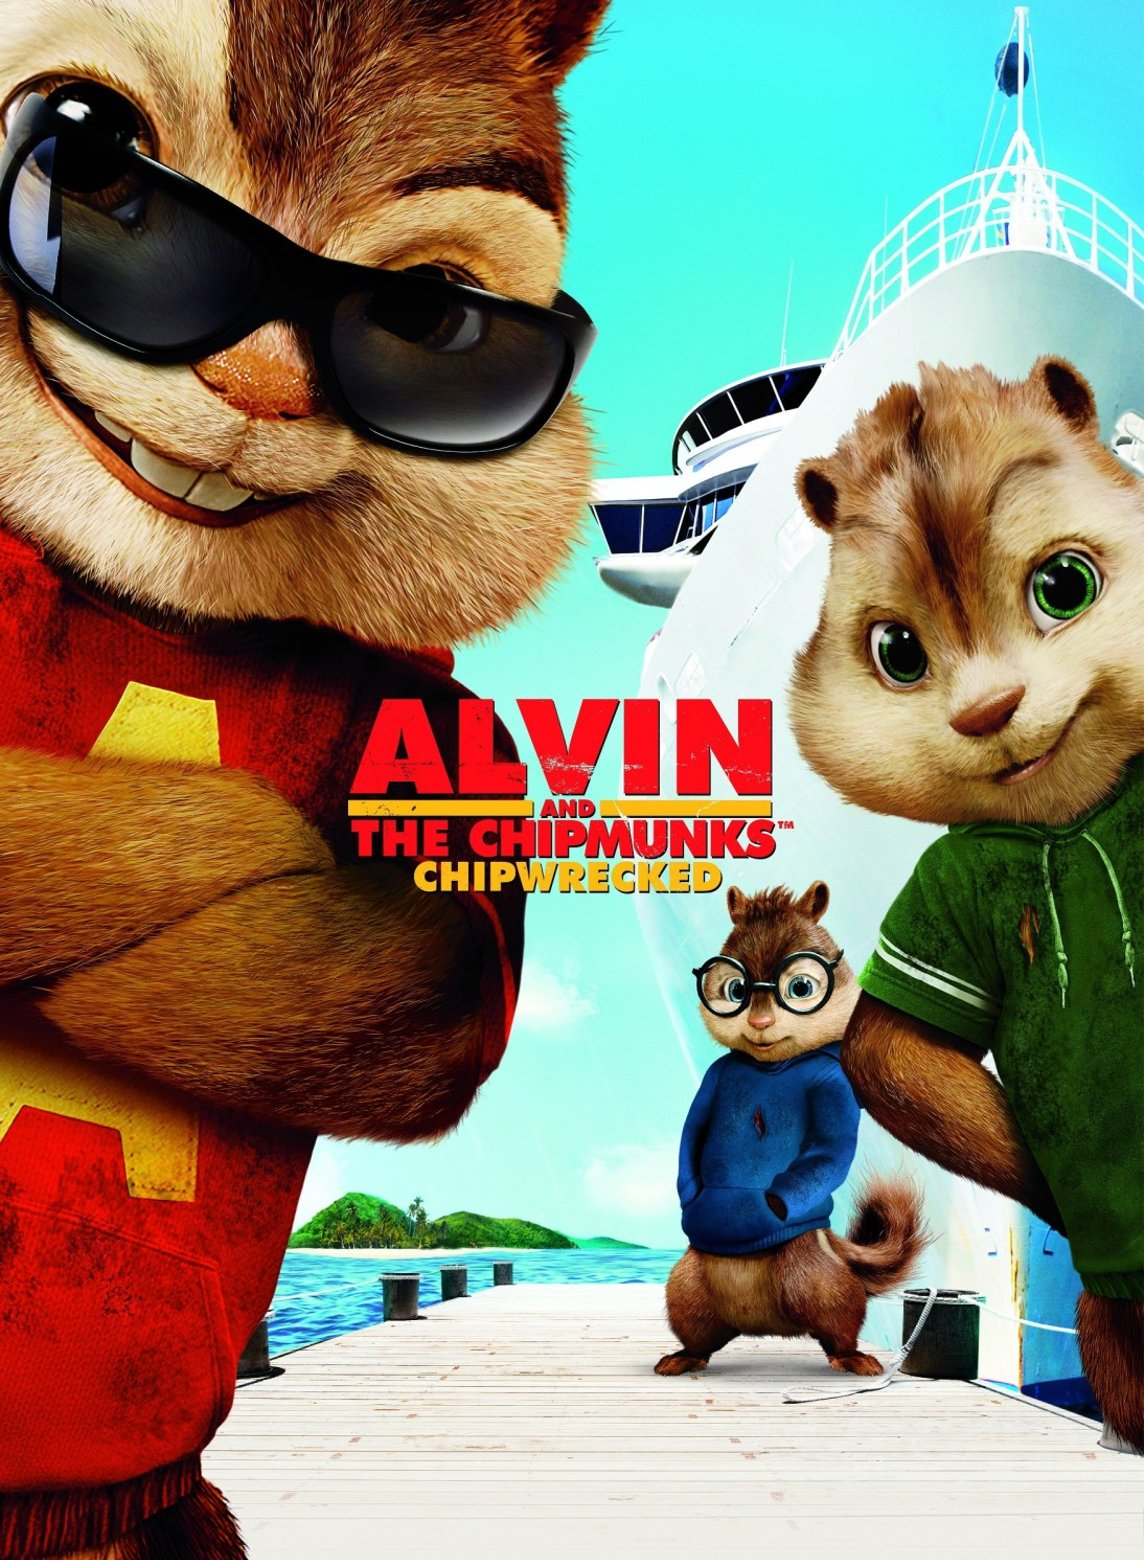 Alvin And The Chipmunks Chipwreked Director Mike Mitchell